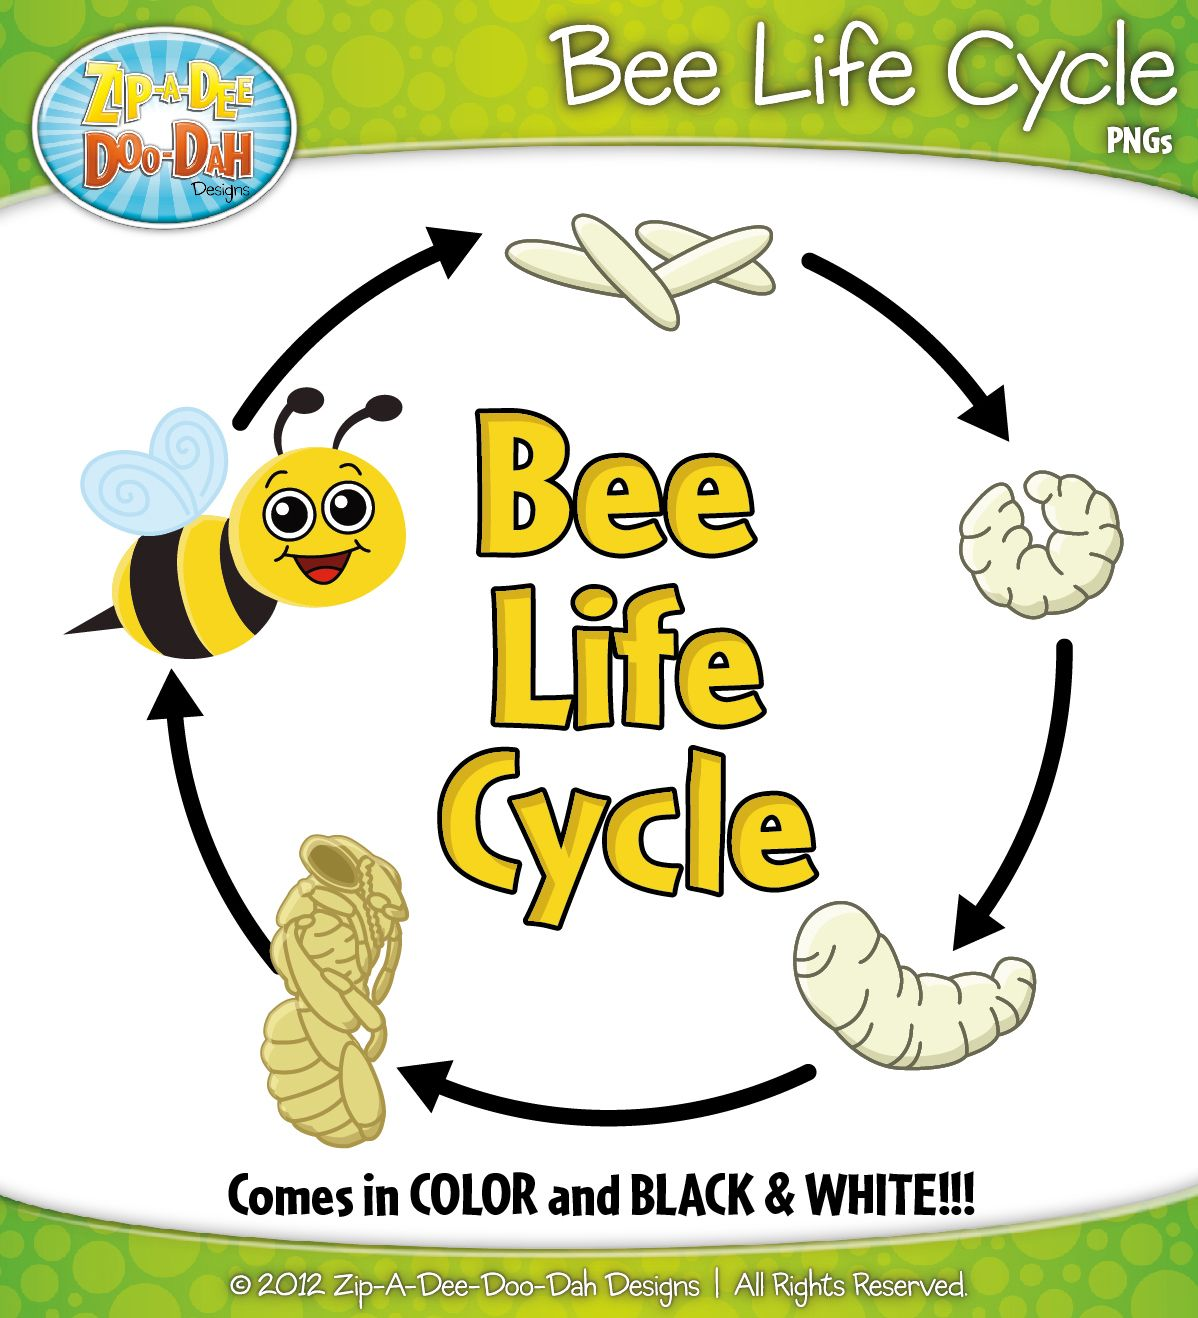 Bee Life Cycle Clipart Zip A Dee Doo Dah Designs